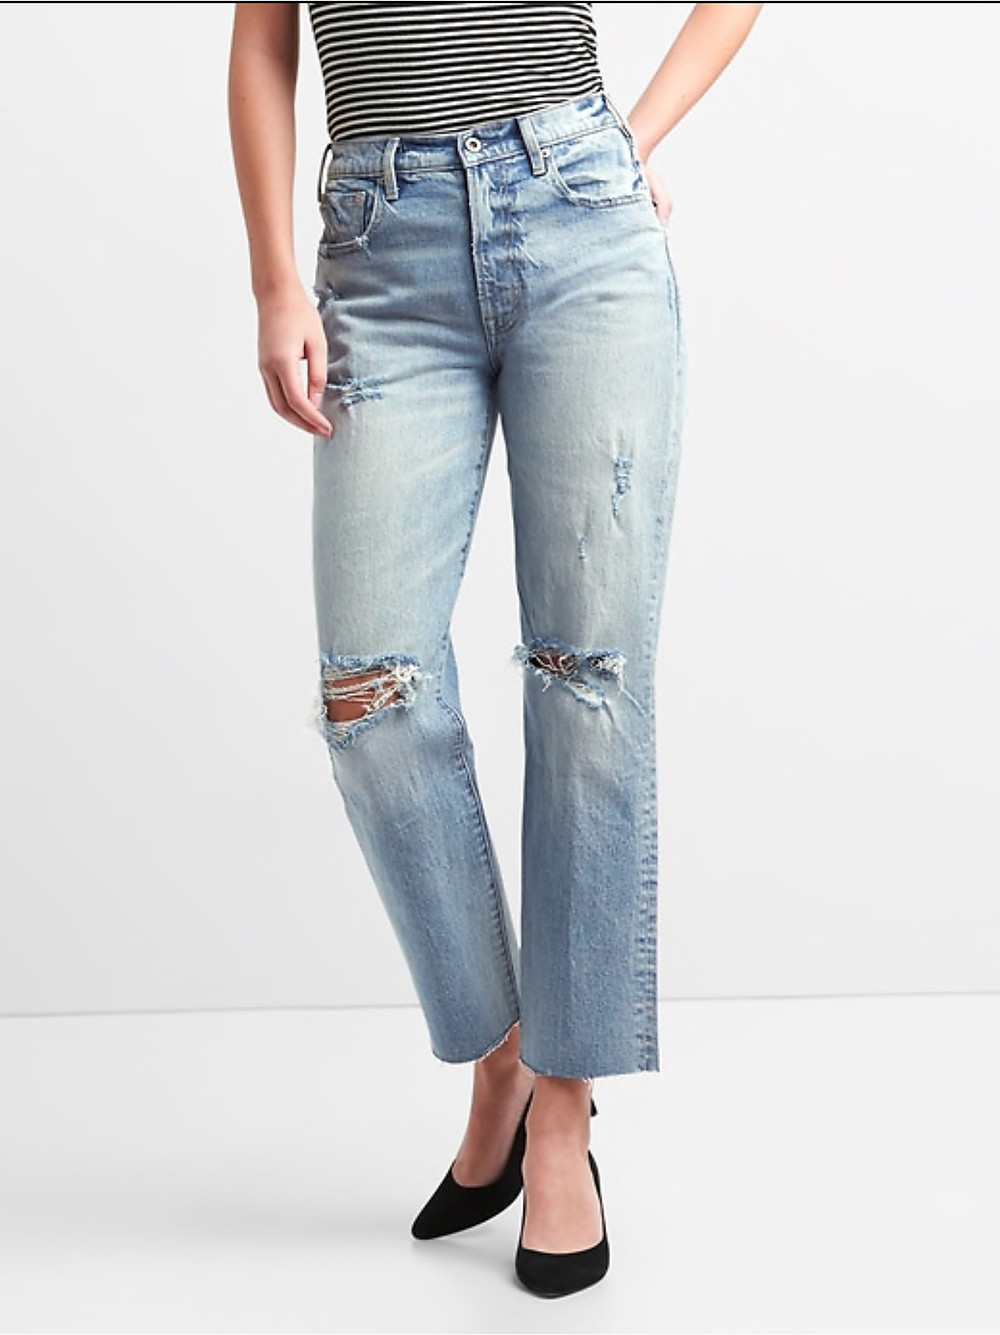 Cone Denim High-Rise Wide Straight Jeans with Destruction: Gap